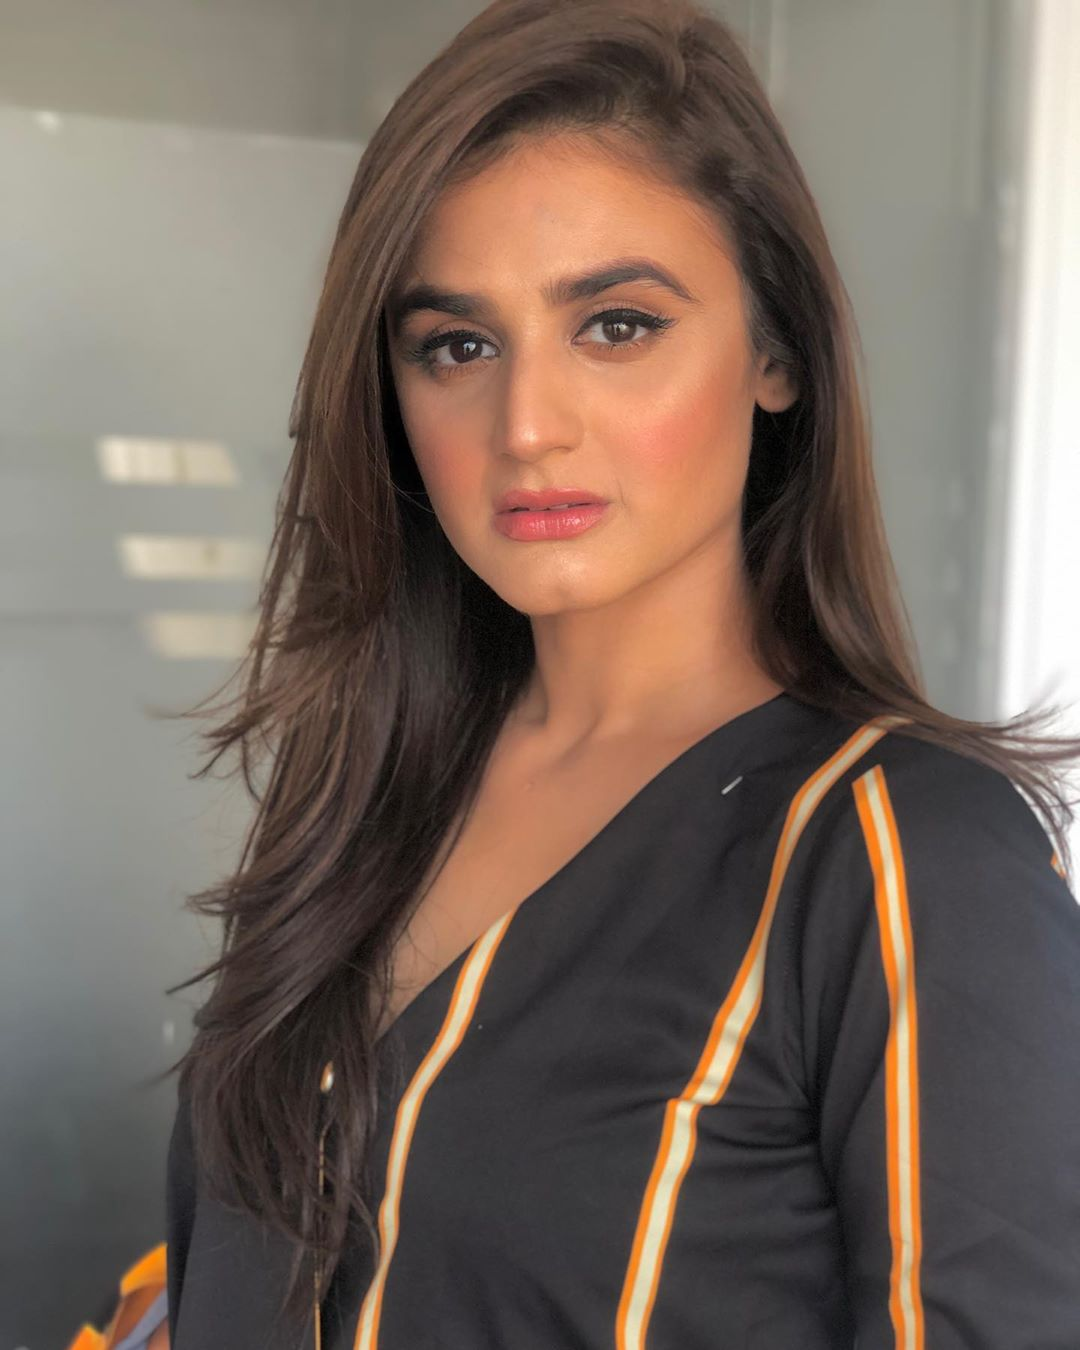 men also have emotions they also feel sad hira mani